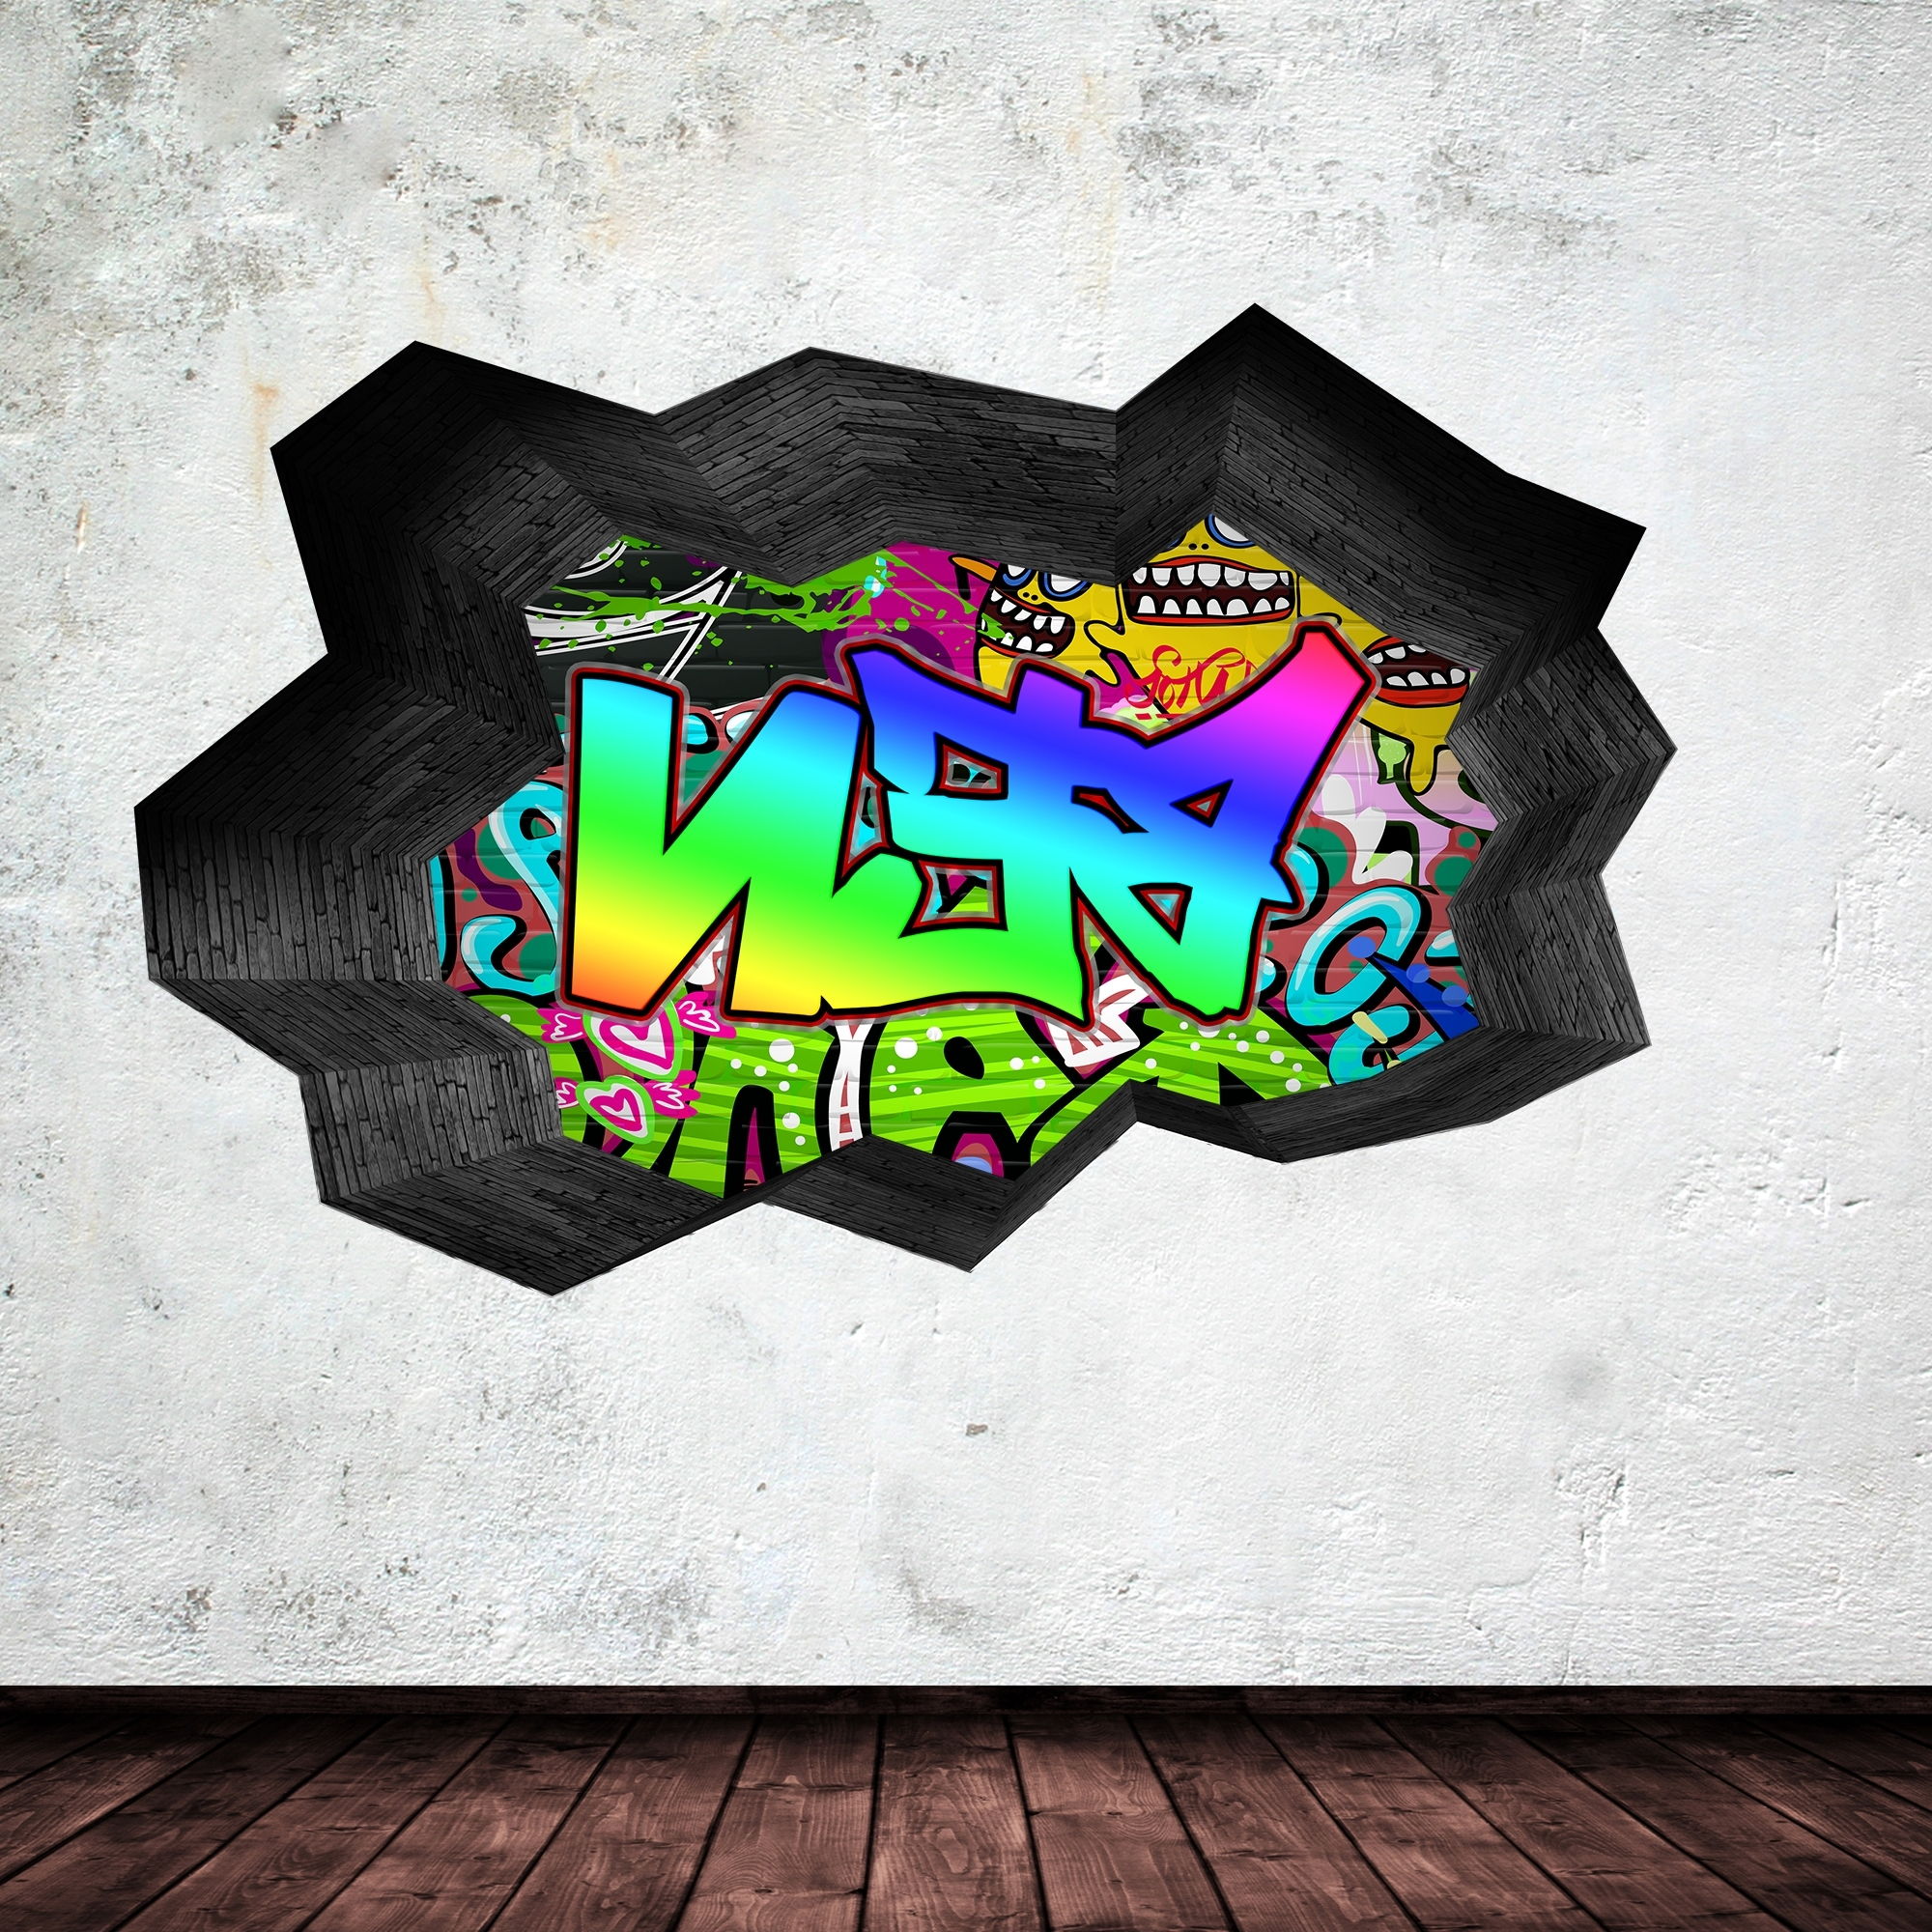 Full Colour Personalised 3d Graffiti Name Cracked Wall Sticker Pertaining To Latest Personalized Graffiti Wall Art (View 9 of 15)